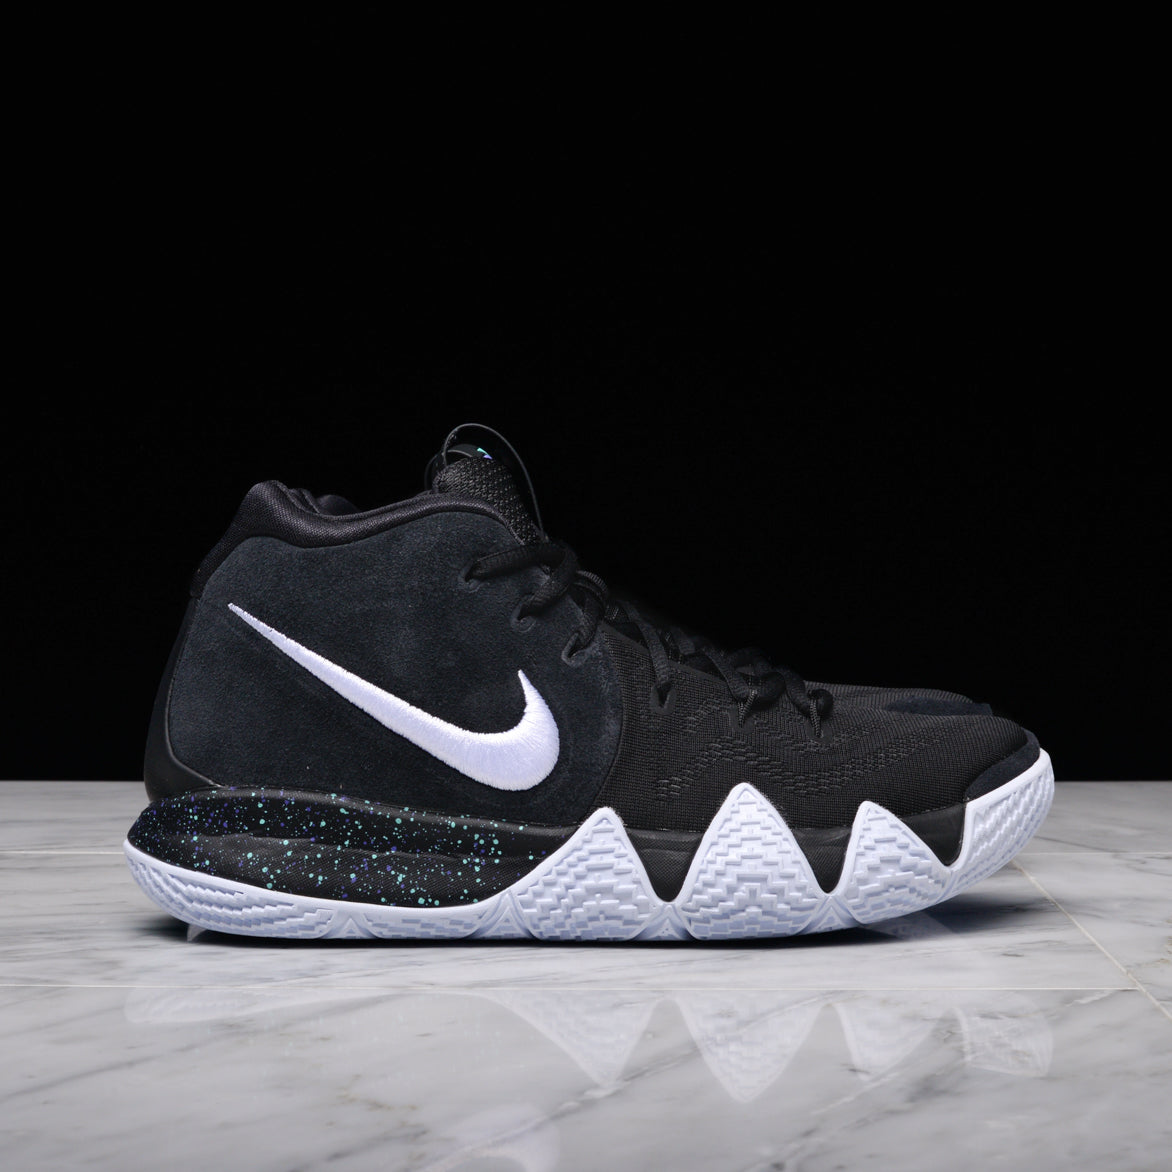 KYRIE 4 - BLACK / WHITE